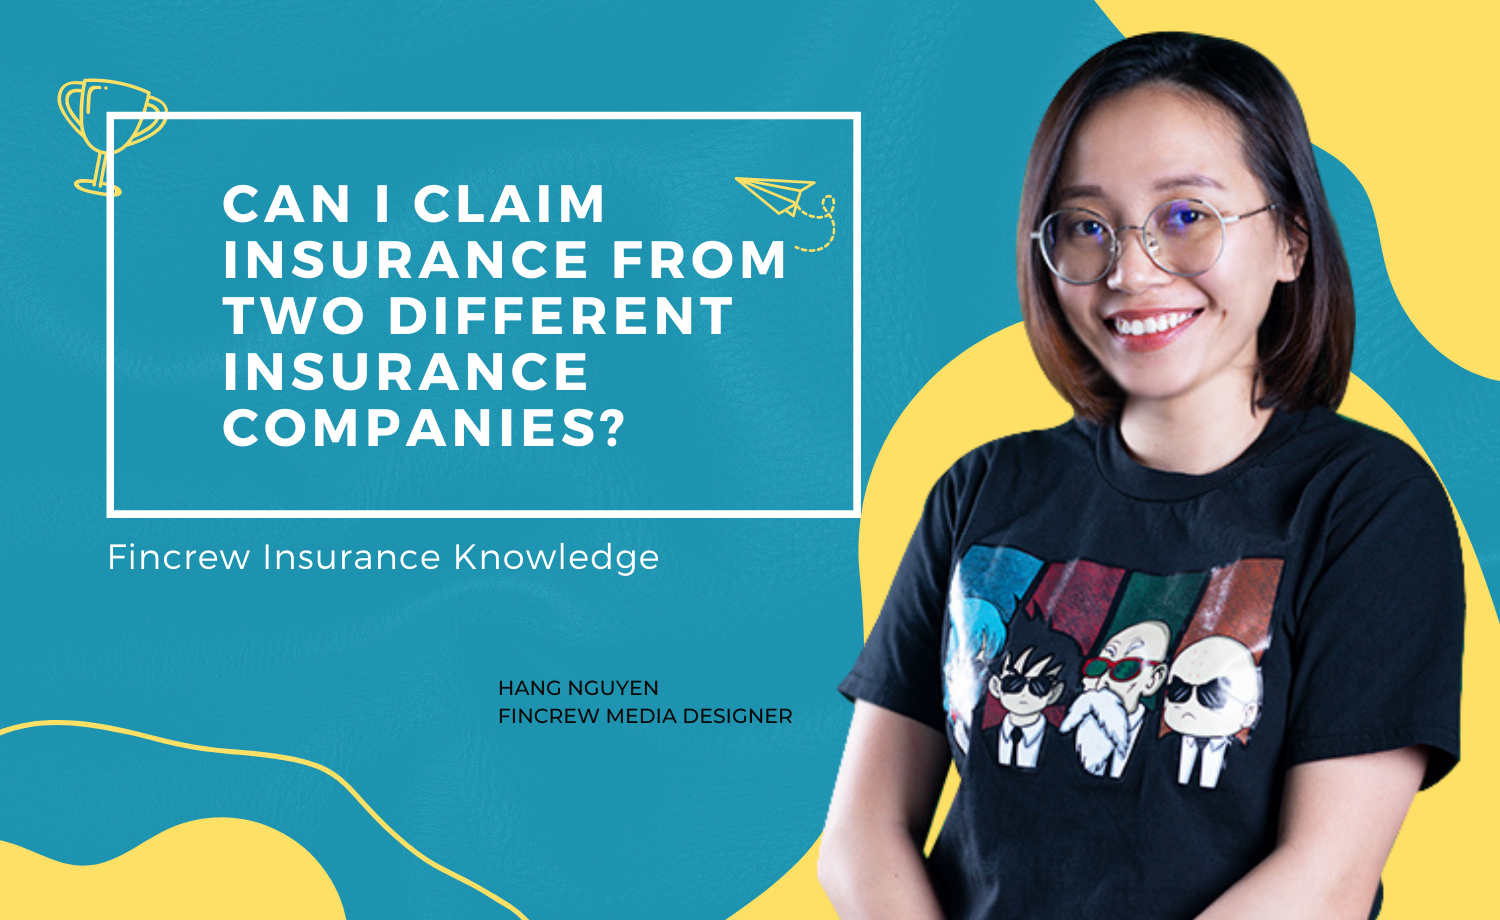 Can I Claim Insurance From Two Different Insurance Companies Blog Featured Image